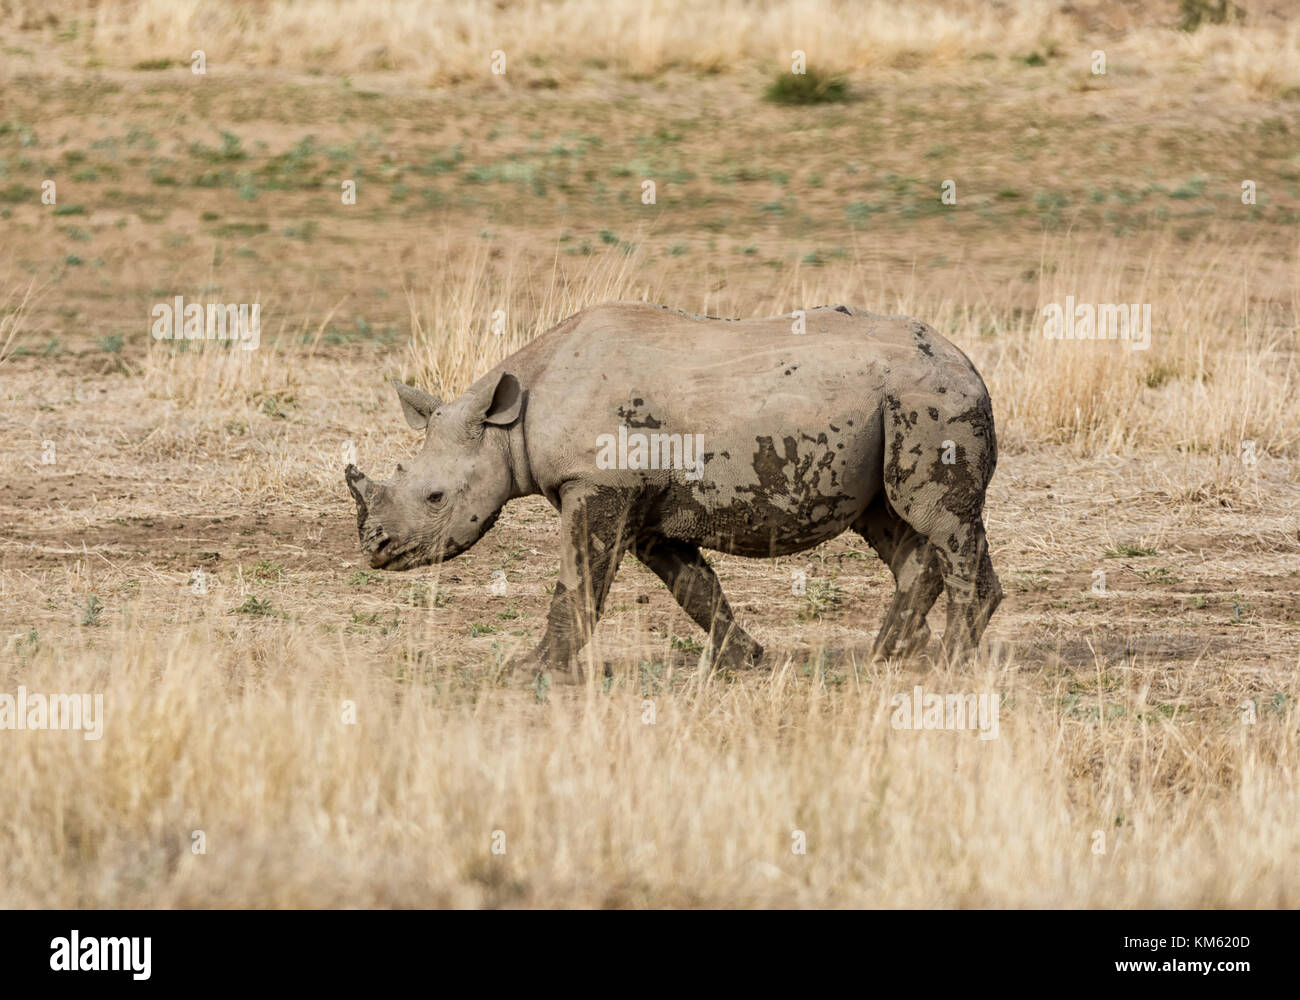 A Black Rhinoceros calf in Southern African savanna - Stock Image